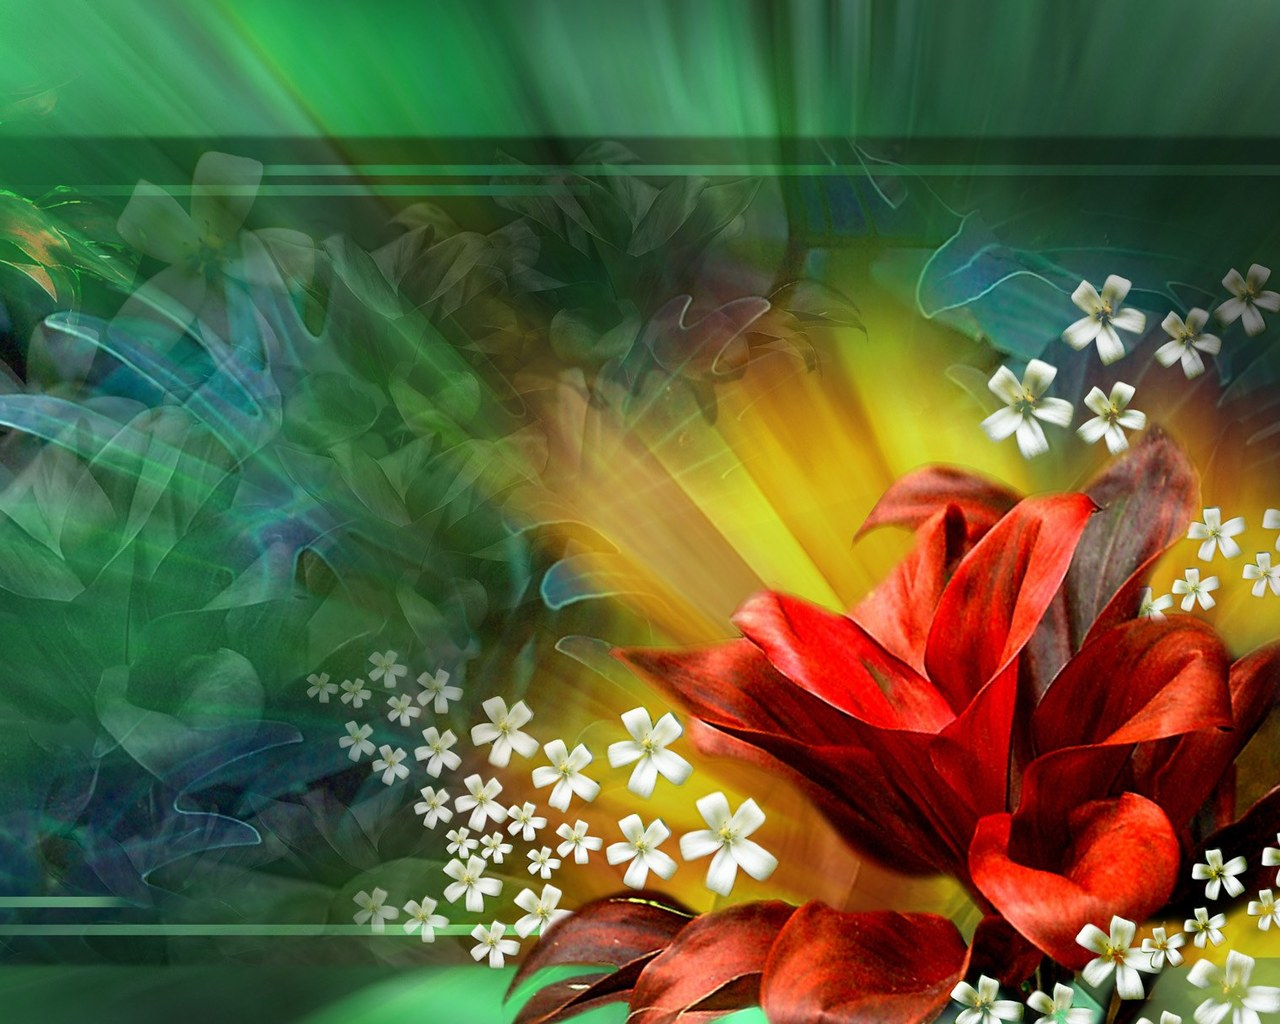 Desktop Nature wallpaper 3d Animated Desktop Animated Desktop 1280x1024